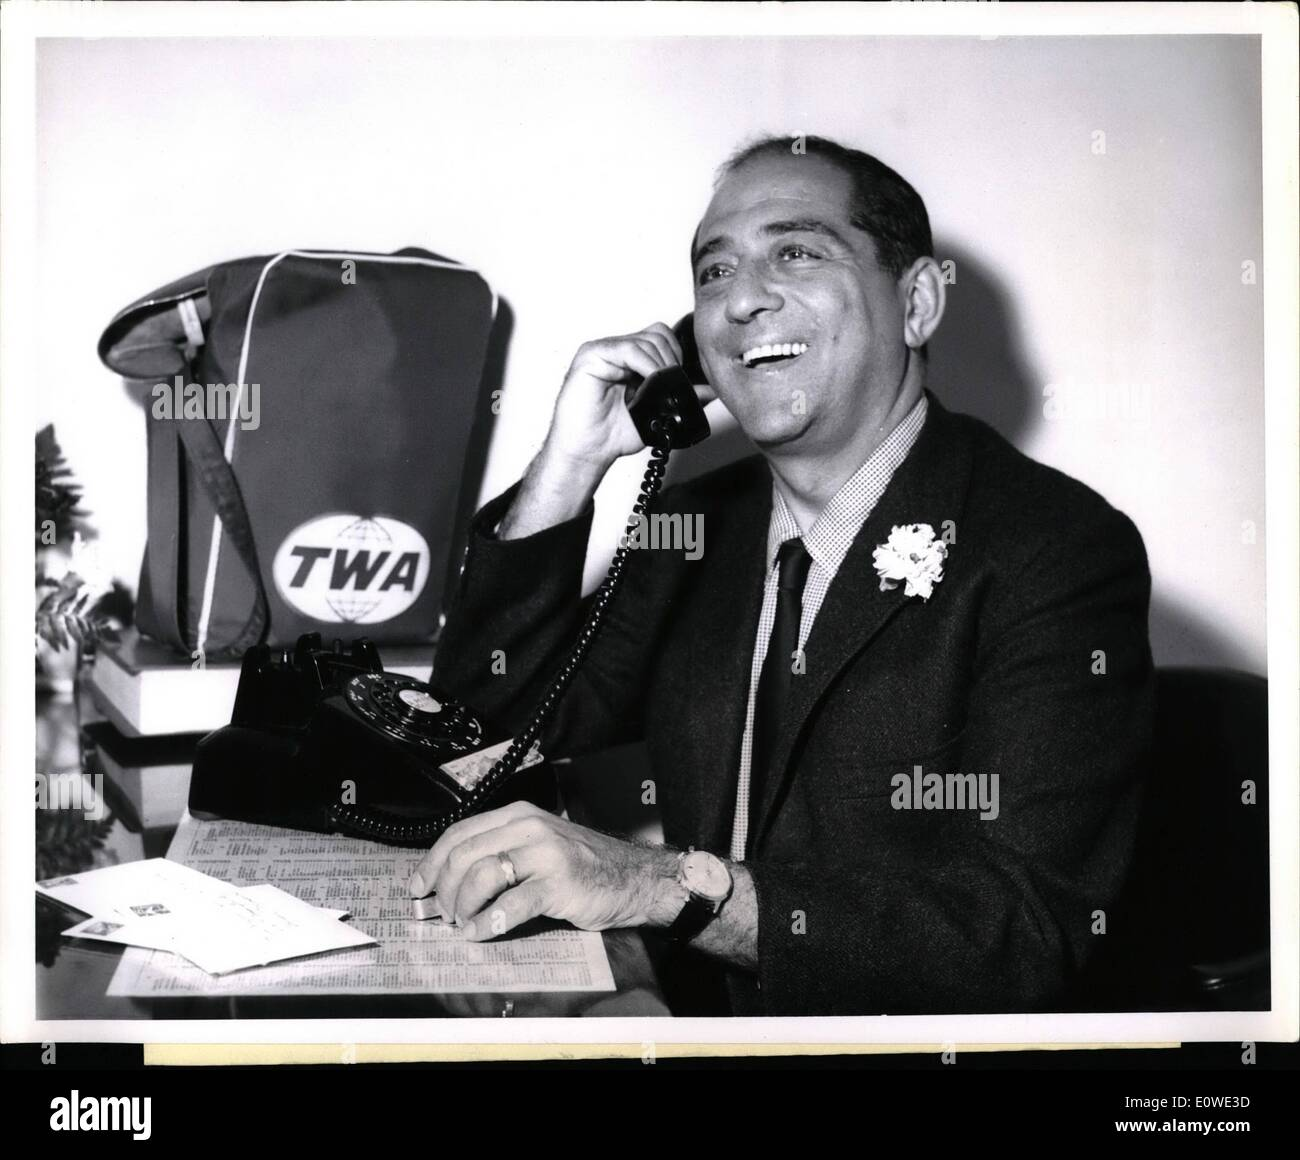 Jul. 07, 1962 - The Metropolitan Opera's baritone Robert Merrill seems to be enjoying this last minute phone call at the Trans World Flight Center, prior to boarding a TWA SuperJet to Rome for three weeks there and in Florence, where he will record Puccini's ''Ii Tabarro'' with Renate Tebaldi, for London Records. Credits: TWA - Stock Image